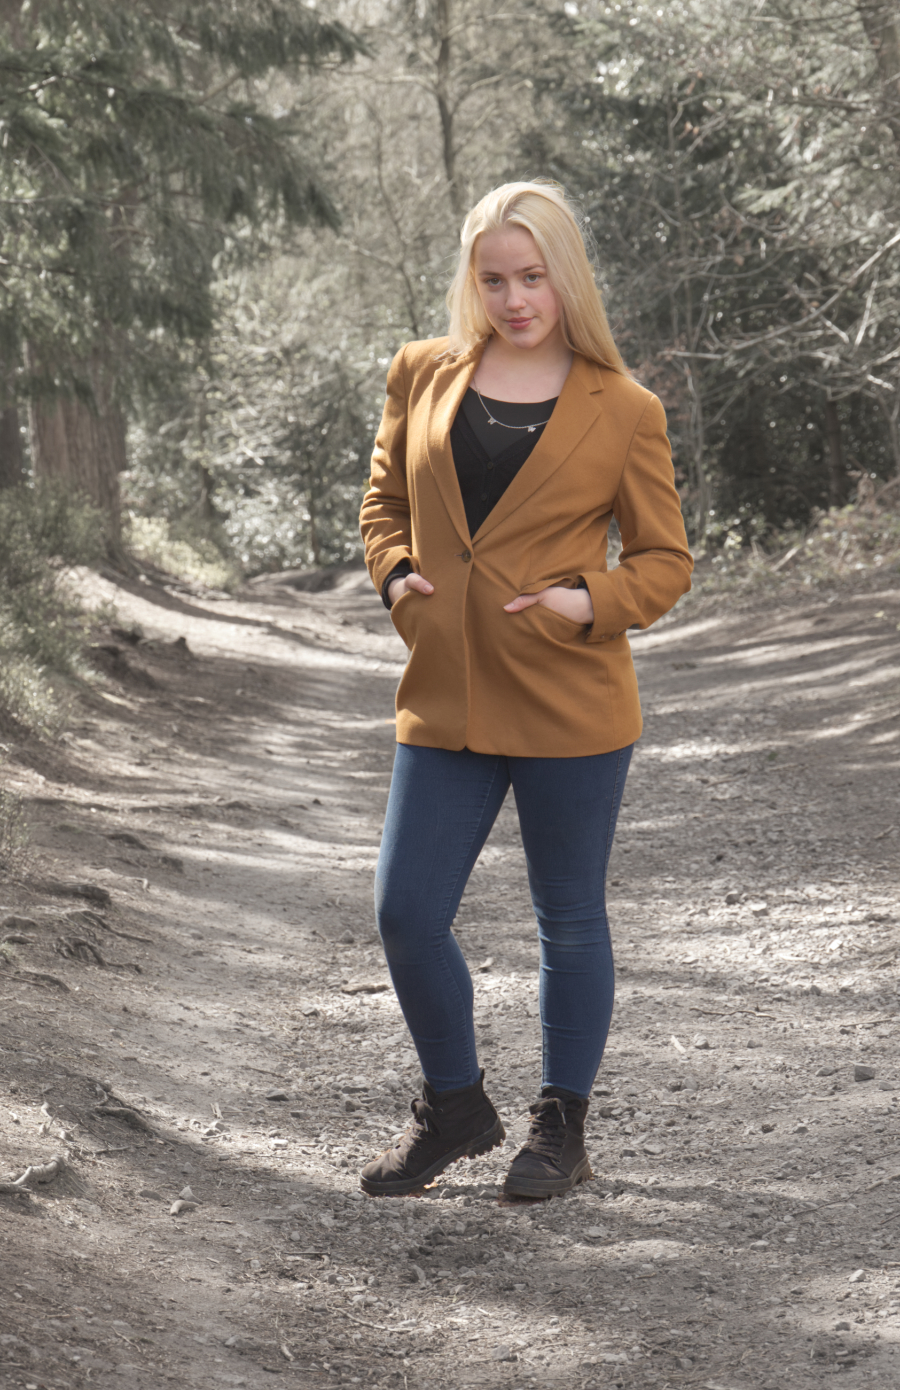 In the woods / Photography by RMF, Model OliviaD / Uploaded 28th April 2021 @ 03:44 PM